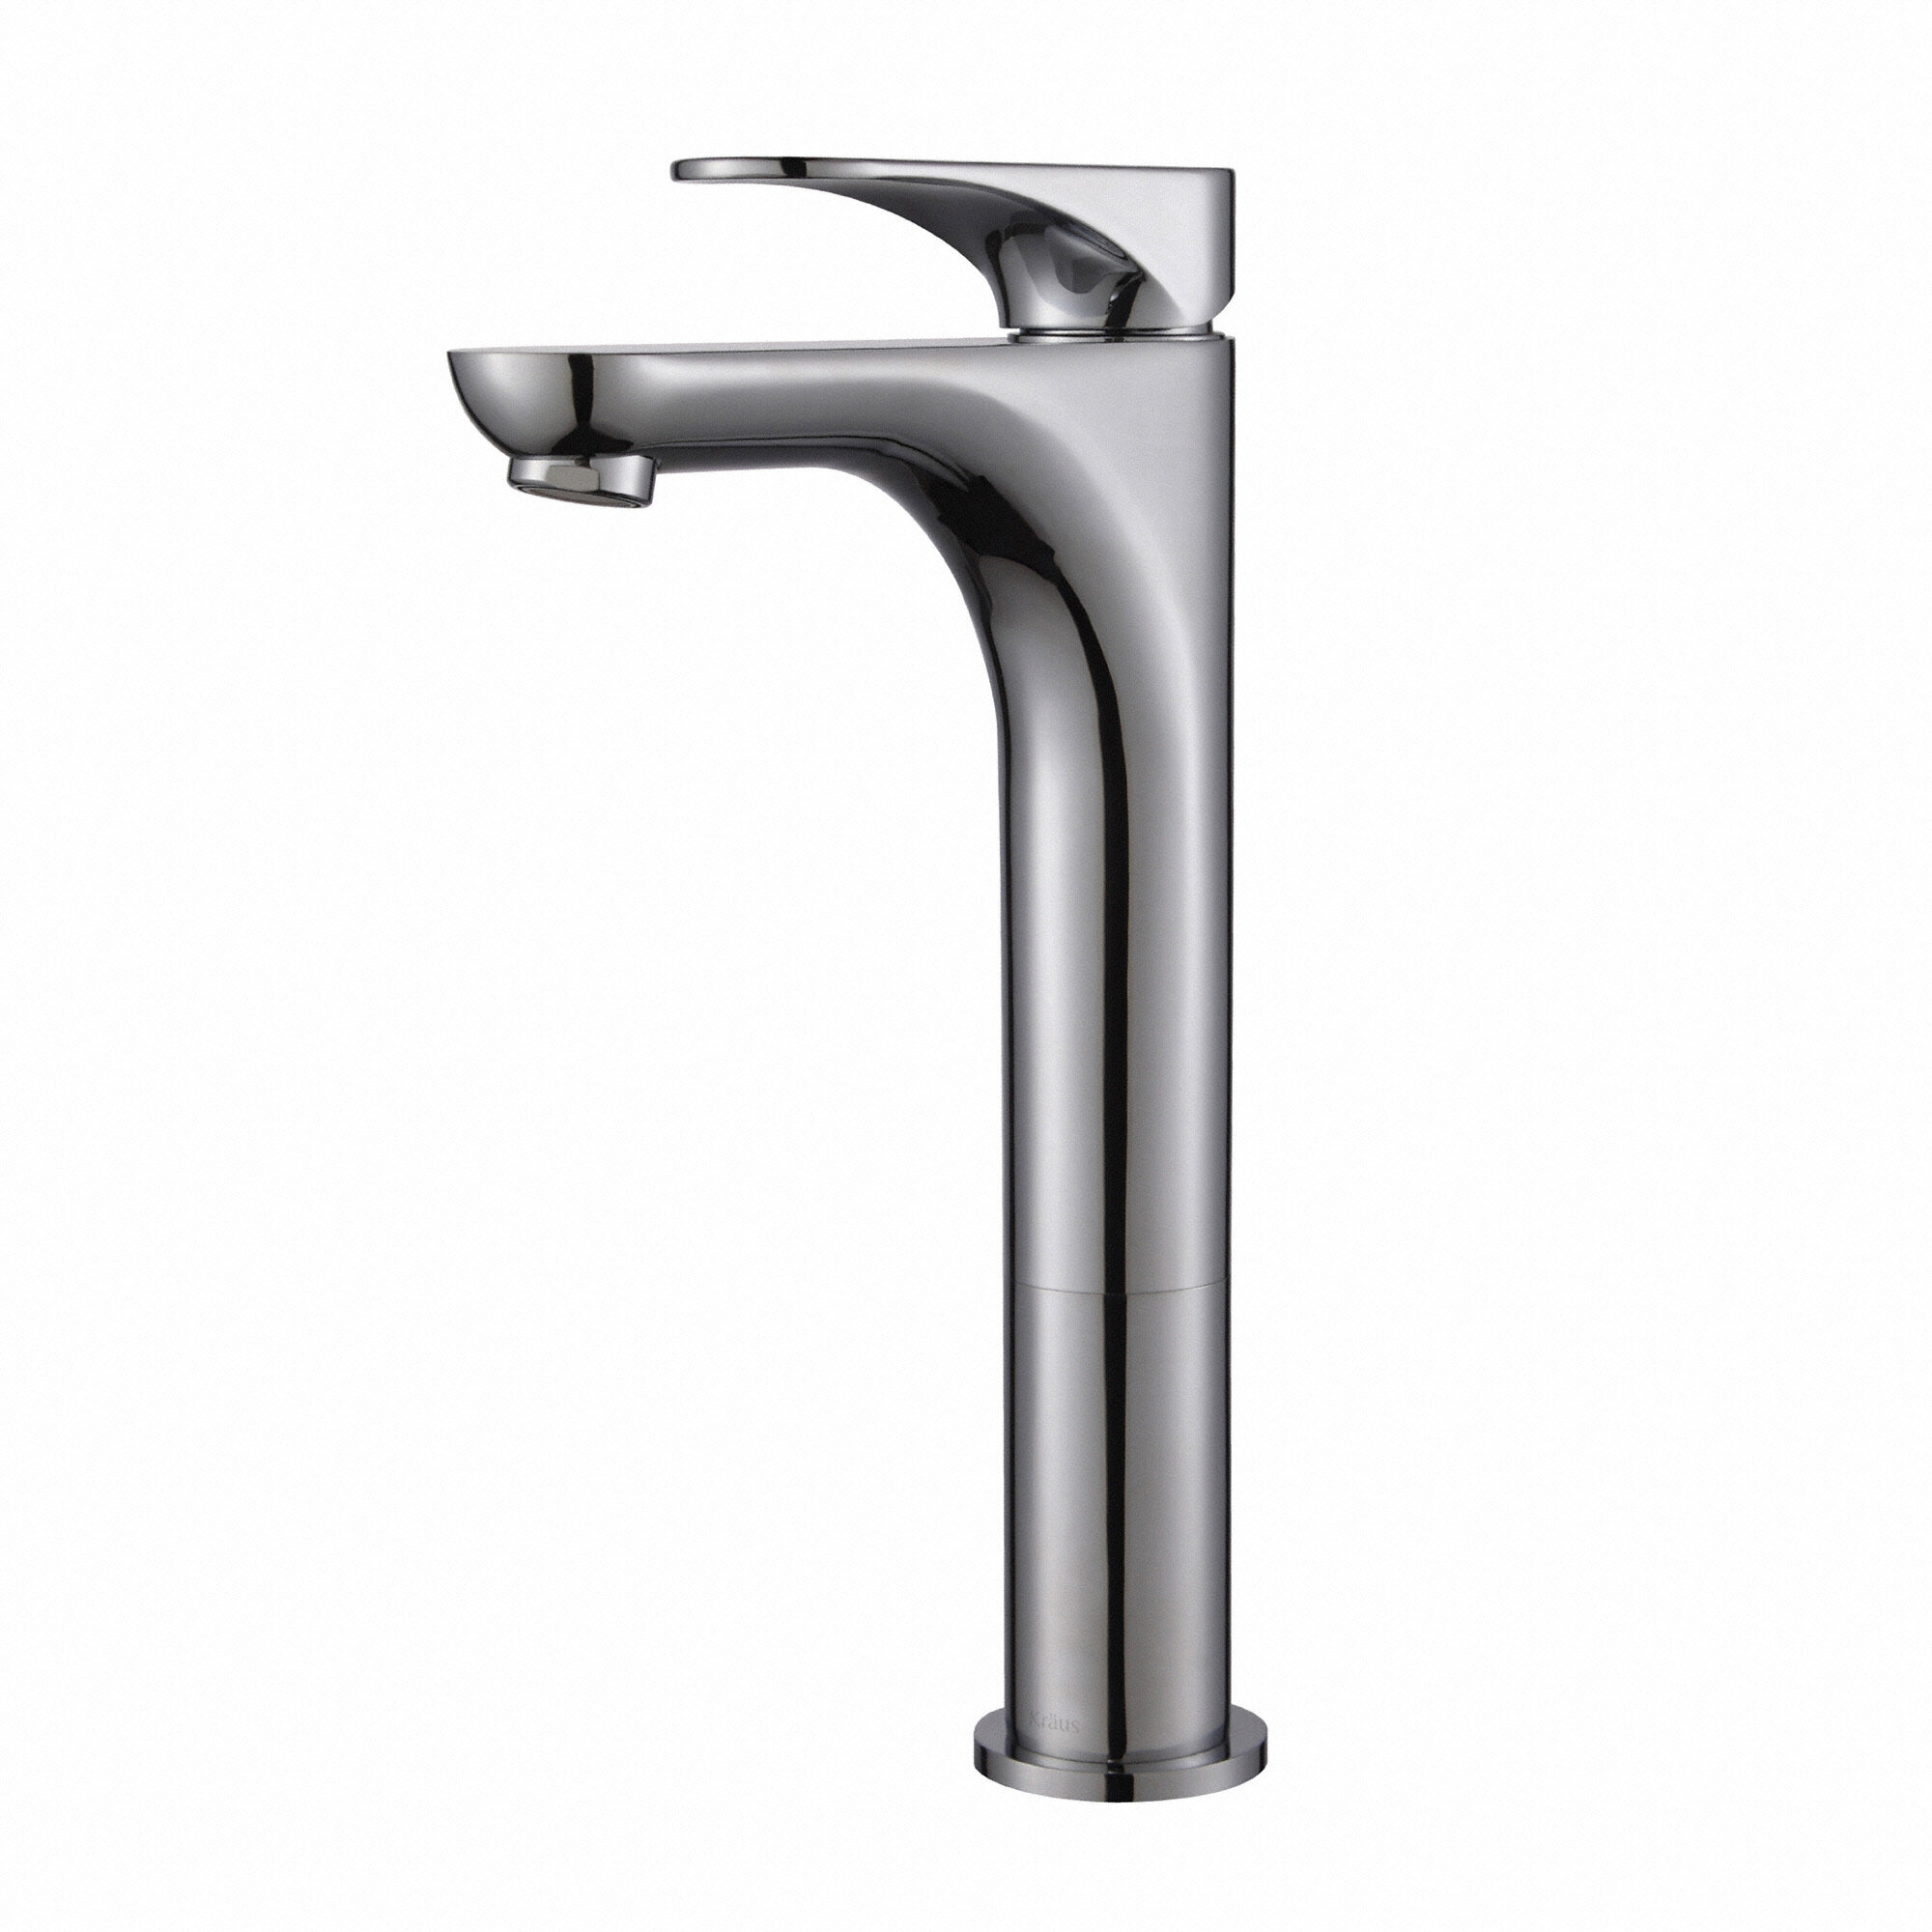 moen new single diagram best faucet faucets of handle repair under kitchen bathroom water hole